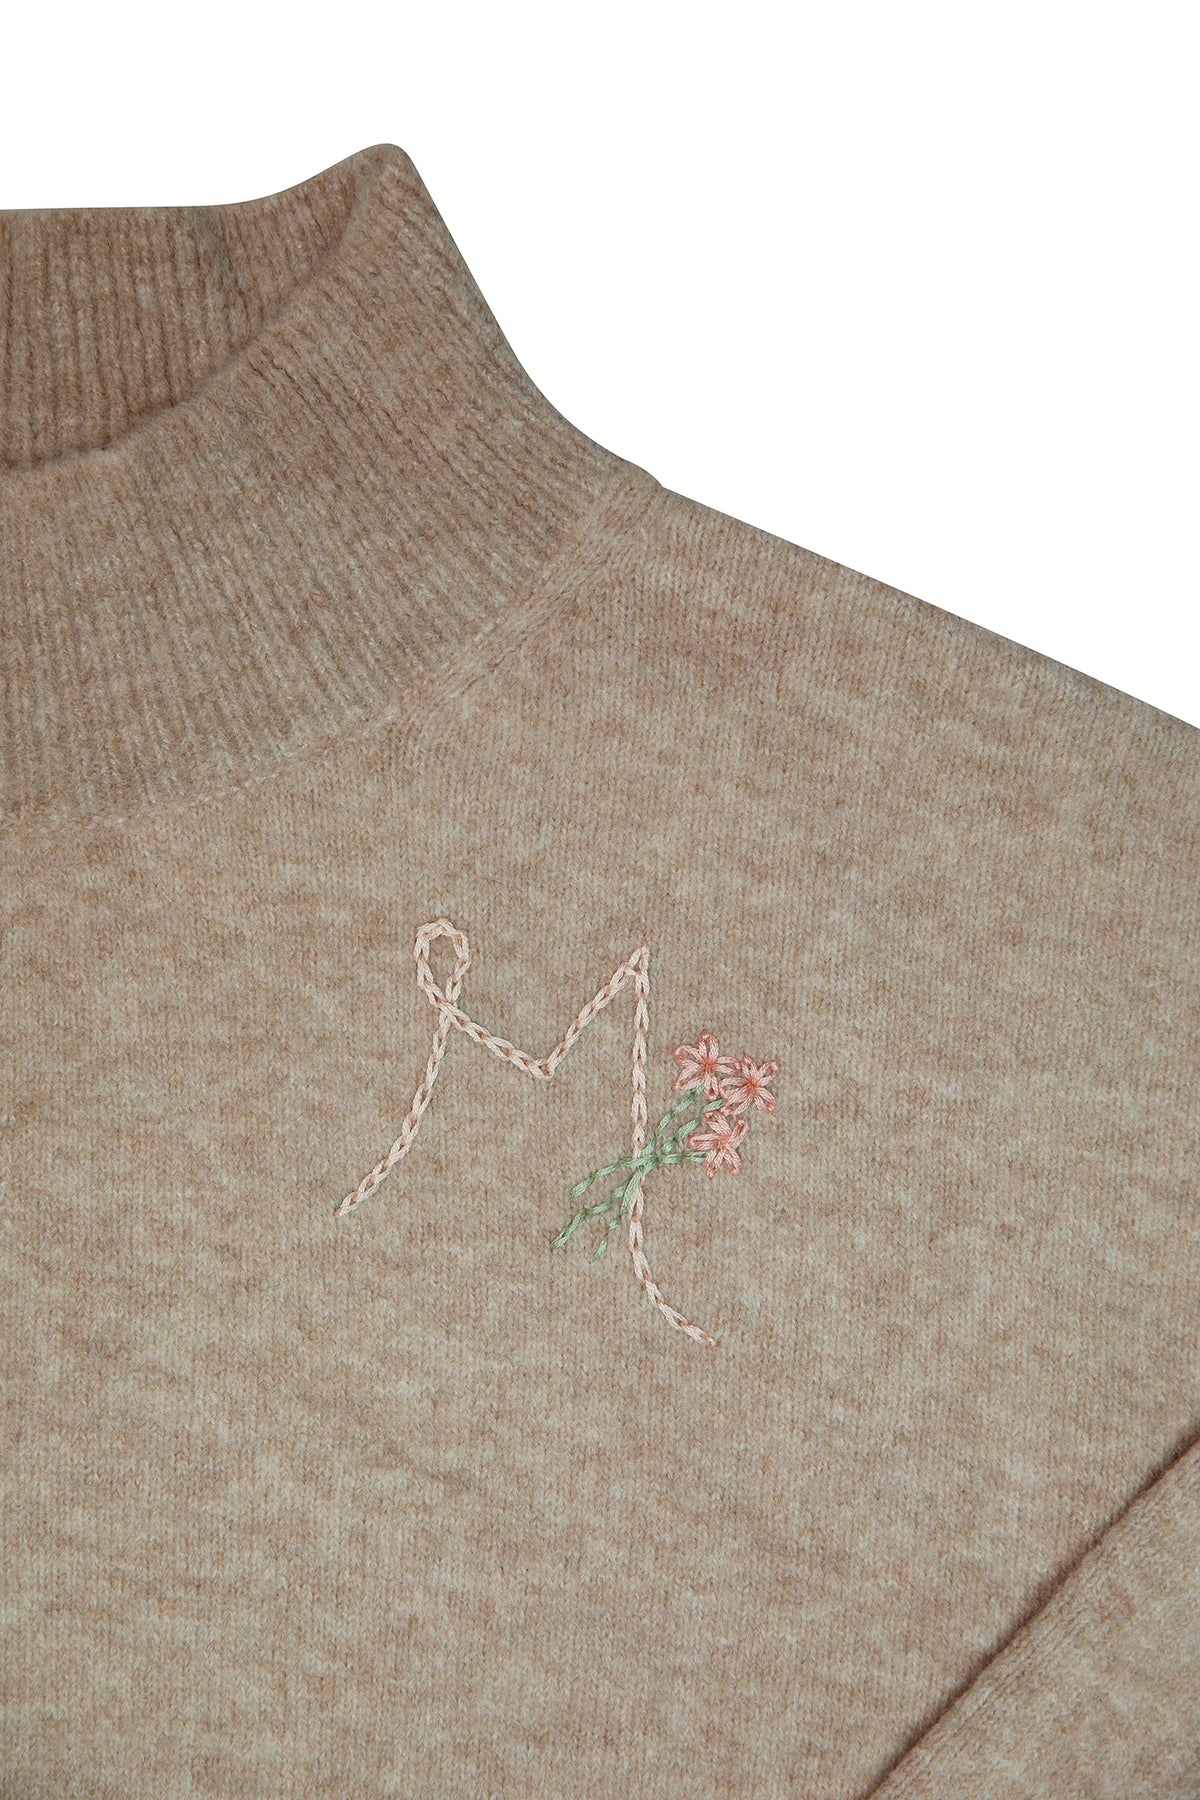 Camel bouquet monogrammed sweater